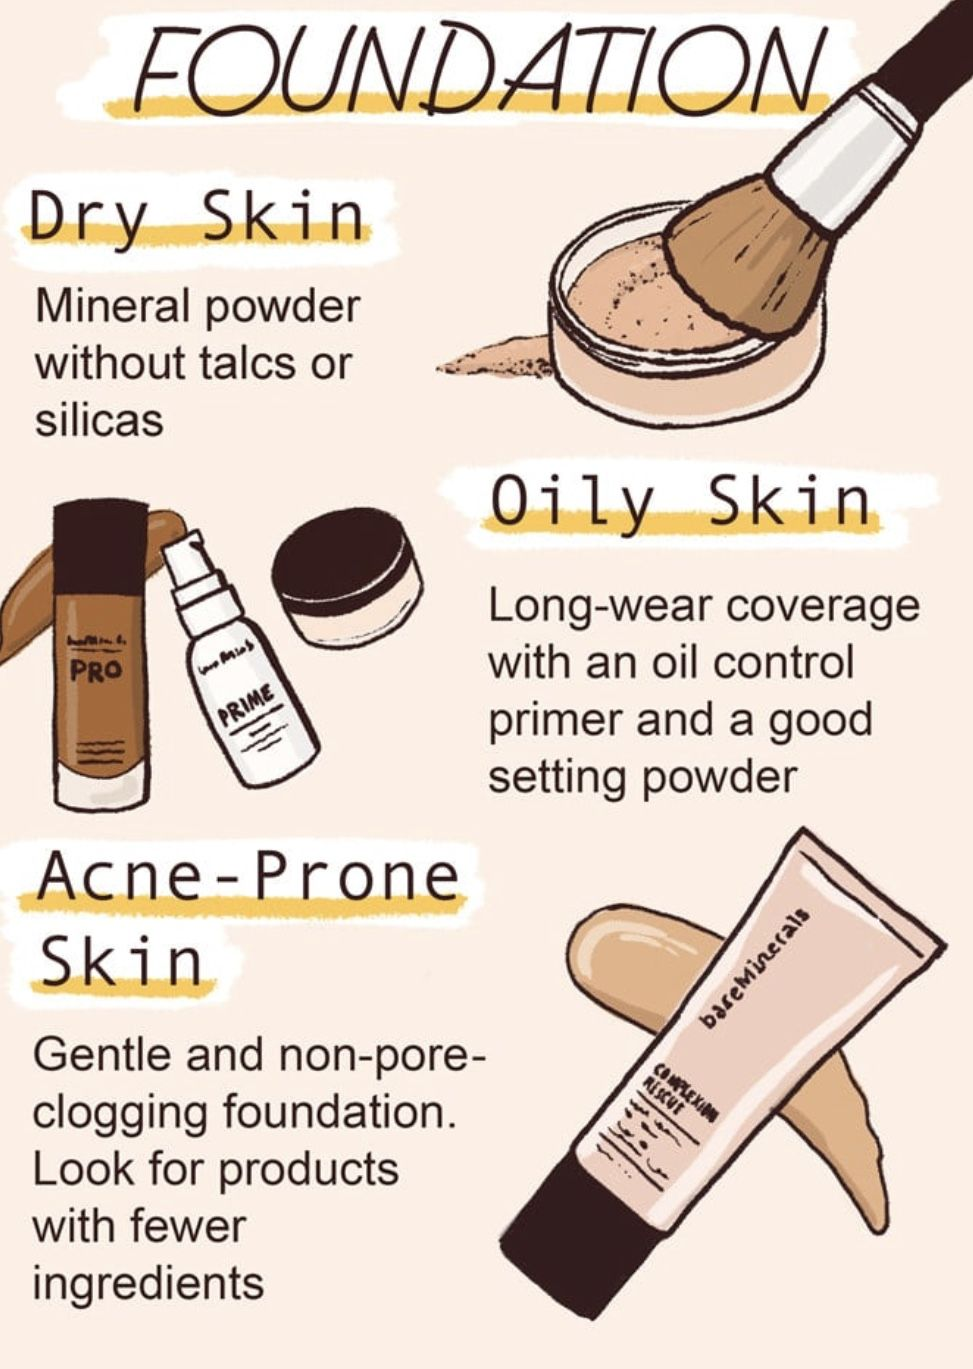 Pin by kaylie mason on beauty Foundation for dry skin